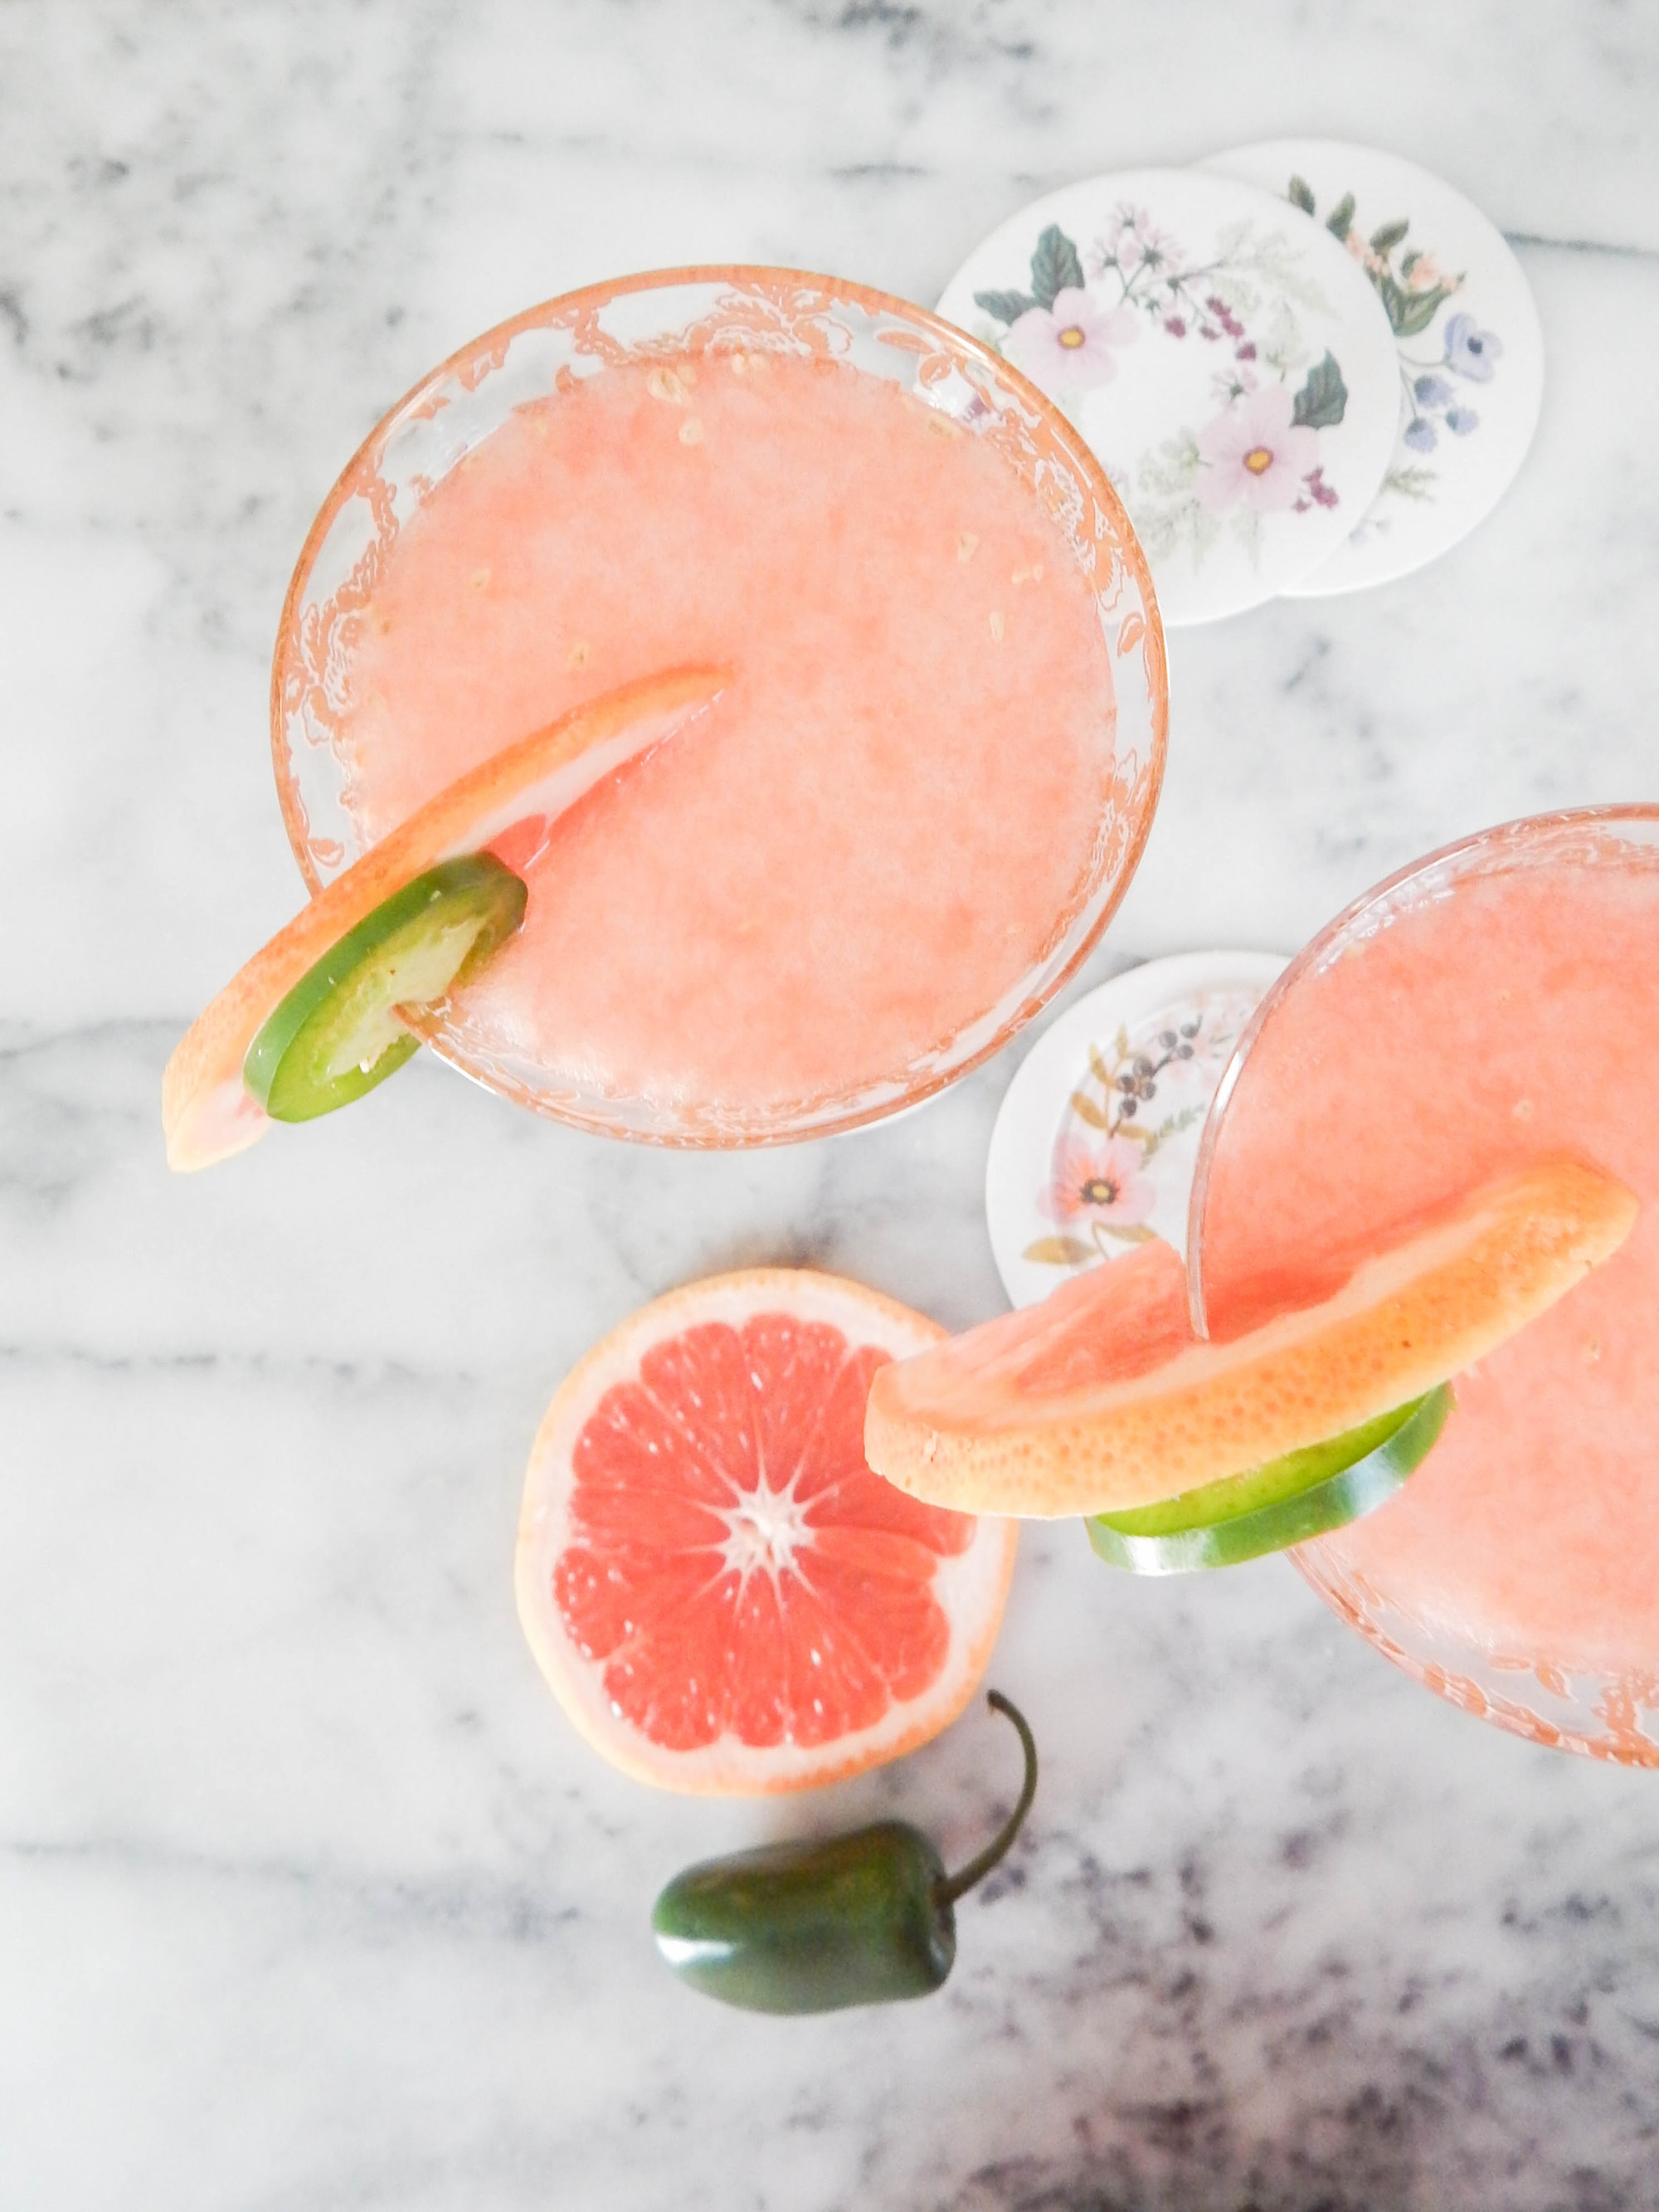 This cocktail is summer in a glass: a little hot and a whole lot of fresh!